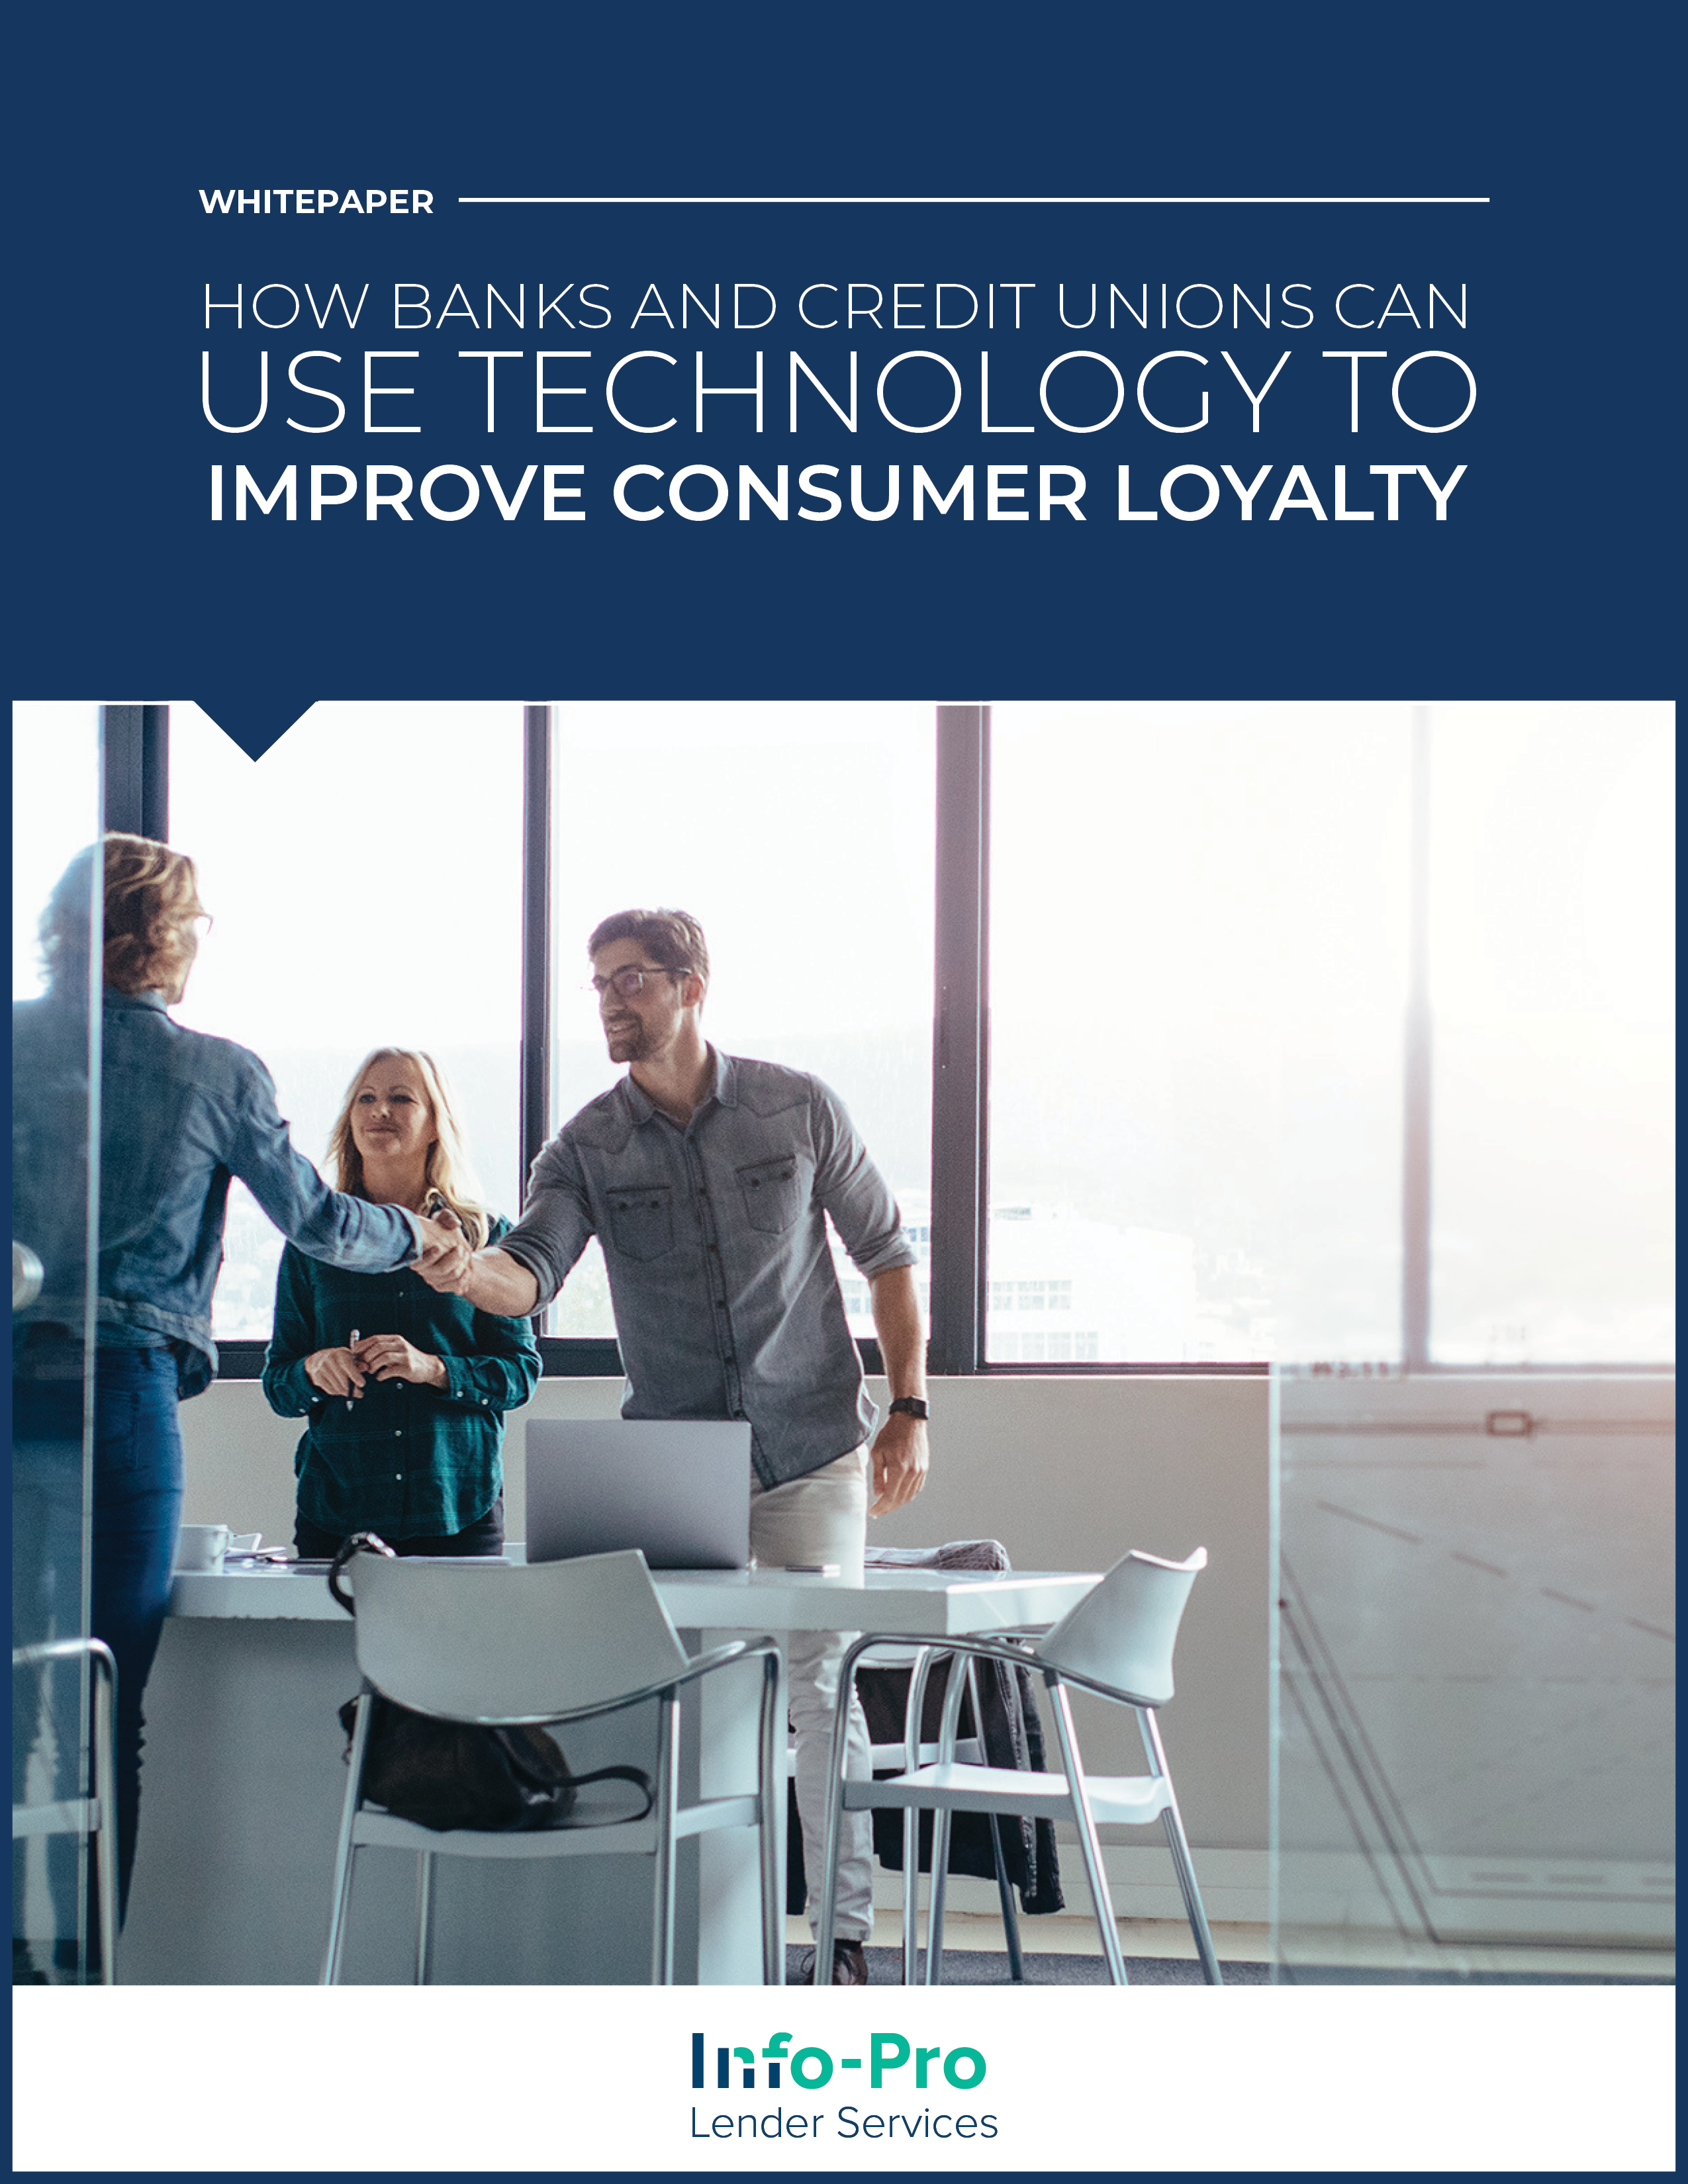 How banks and credit unions can use technology to improve consumer loyalty